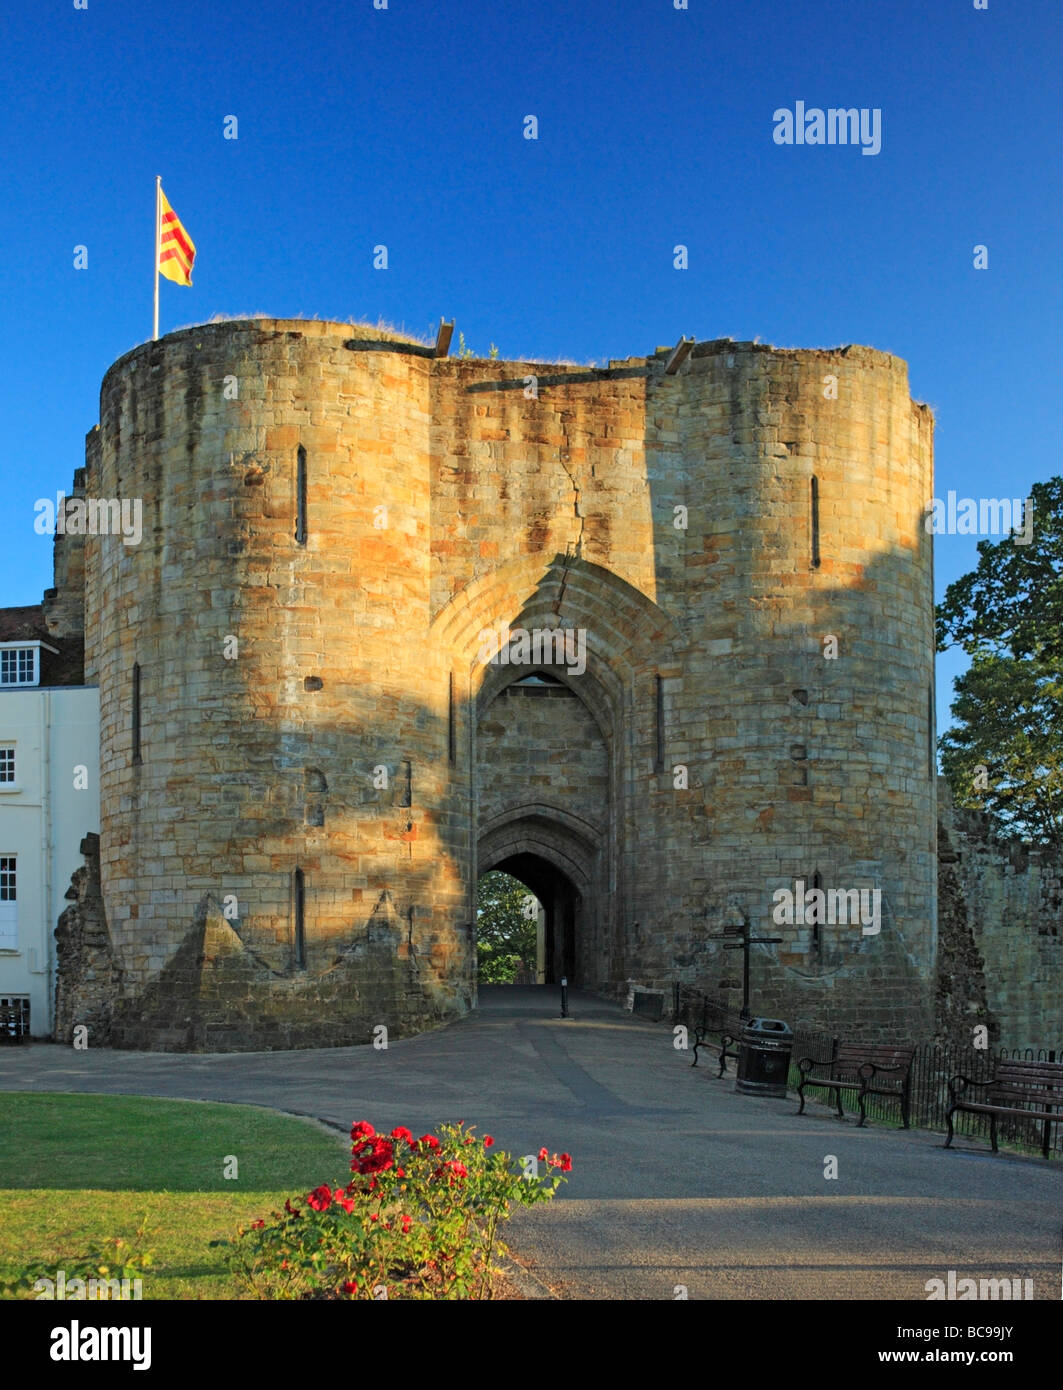 The Motte and Bailey Gatehouse front entrance to Tonbridge Castle, Kent, England, UK. - Stock Image